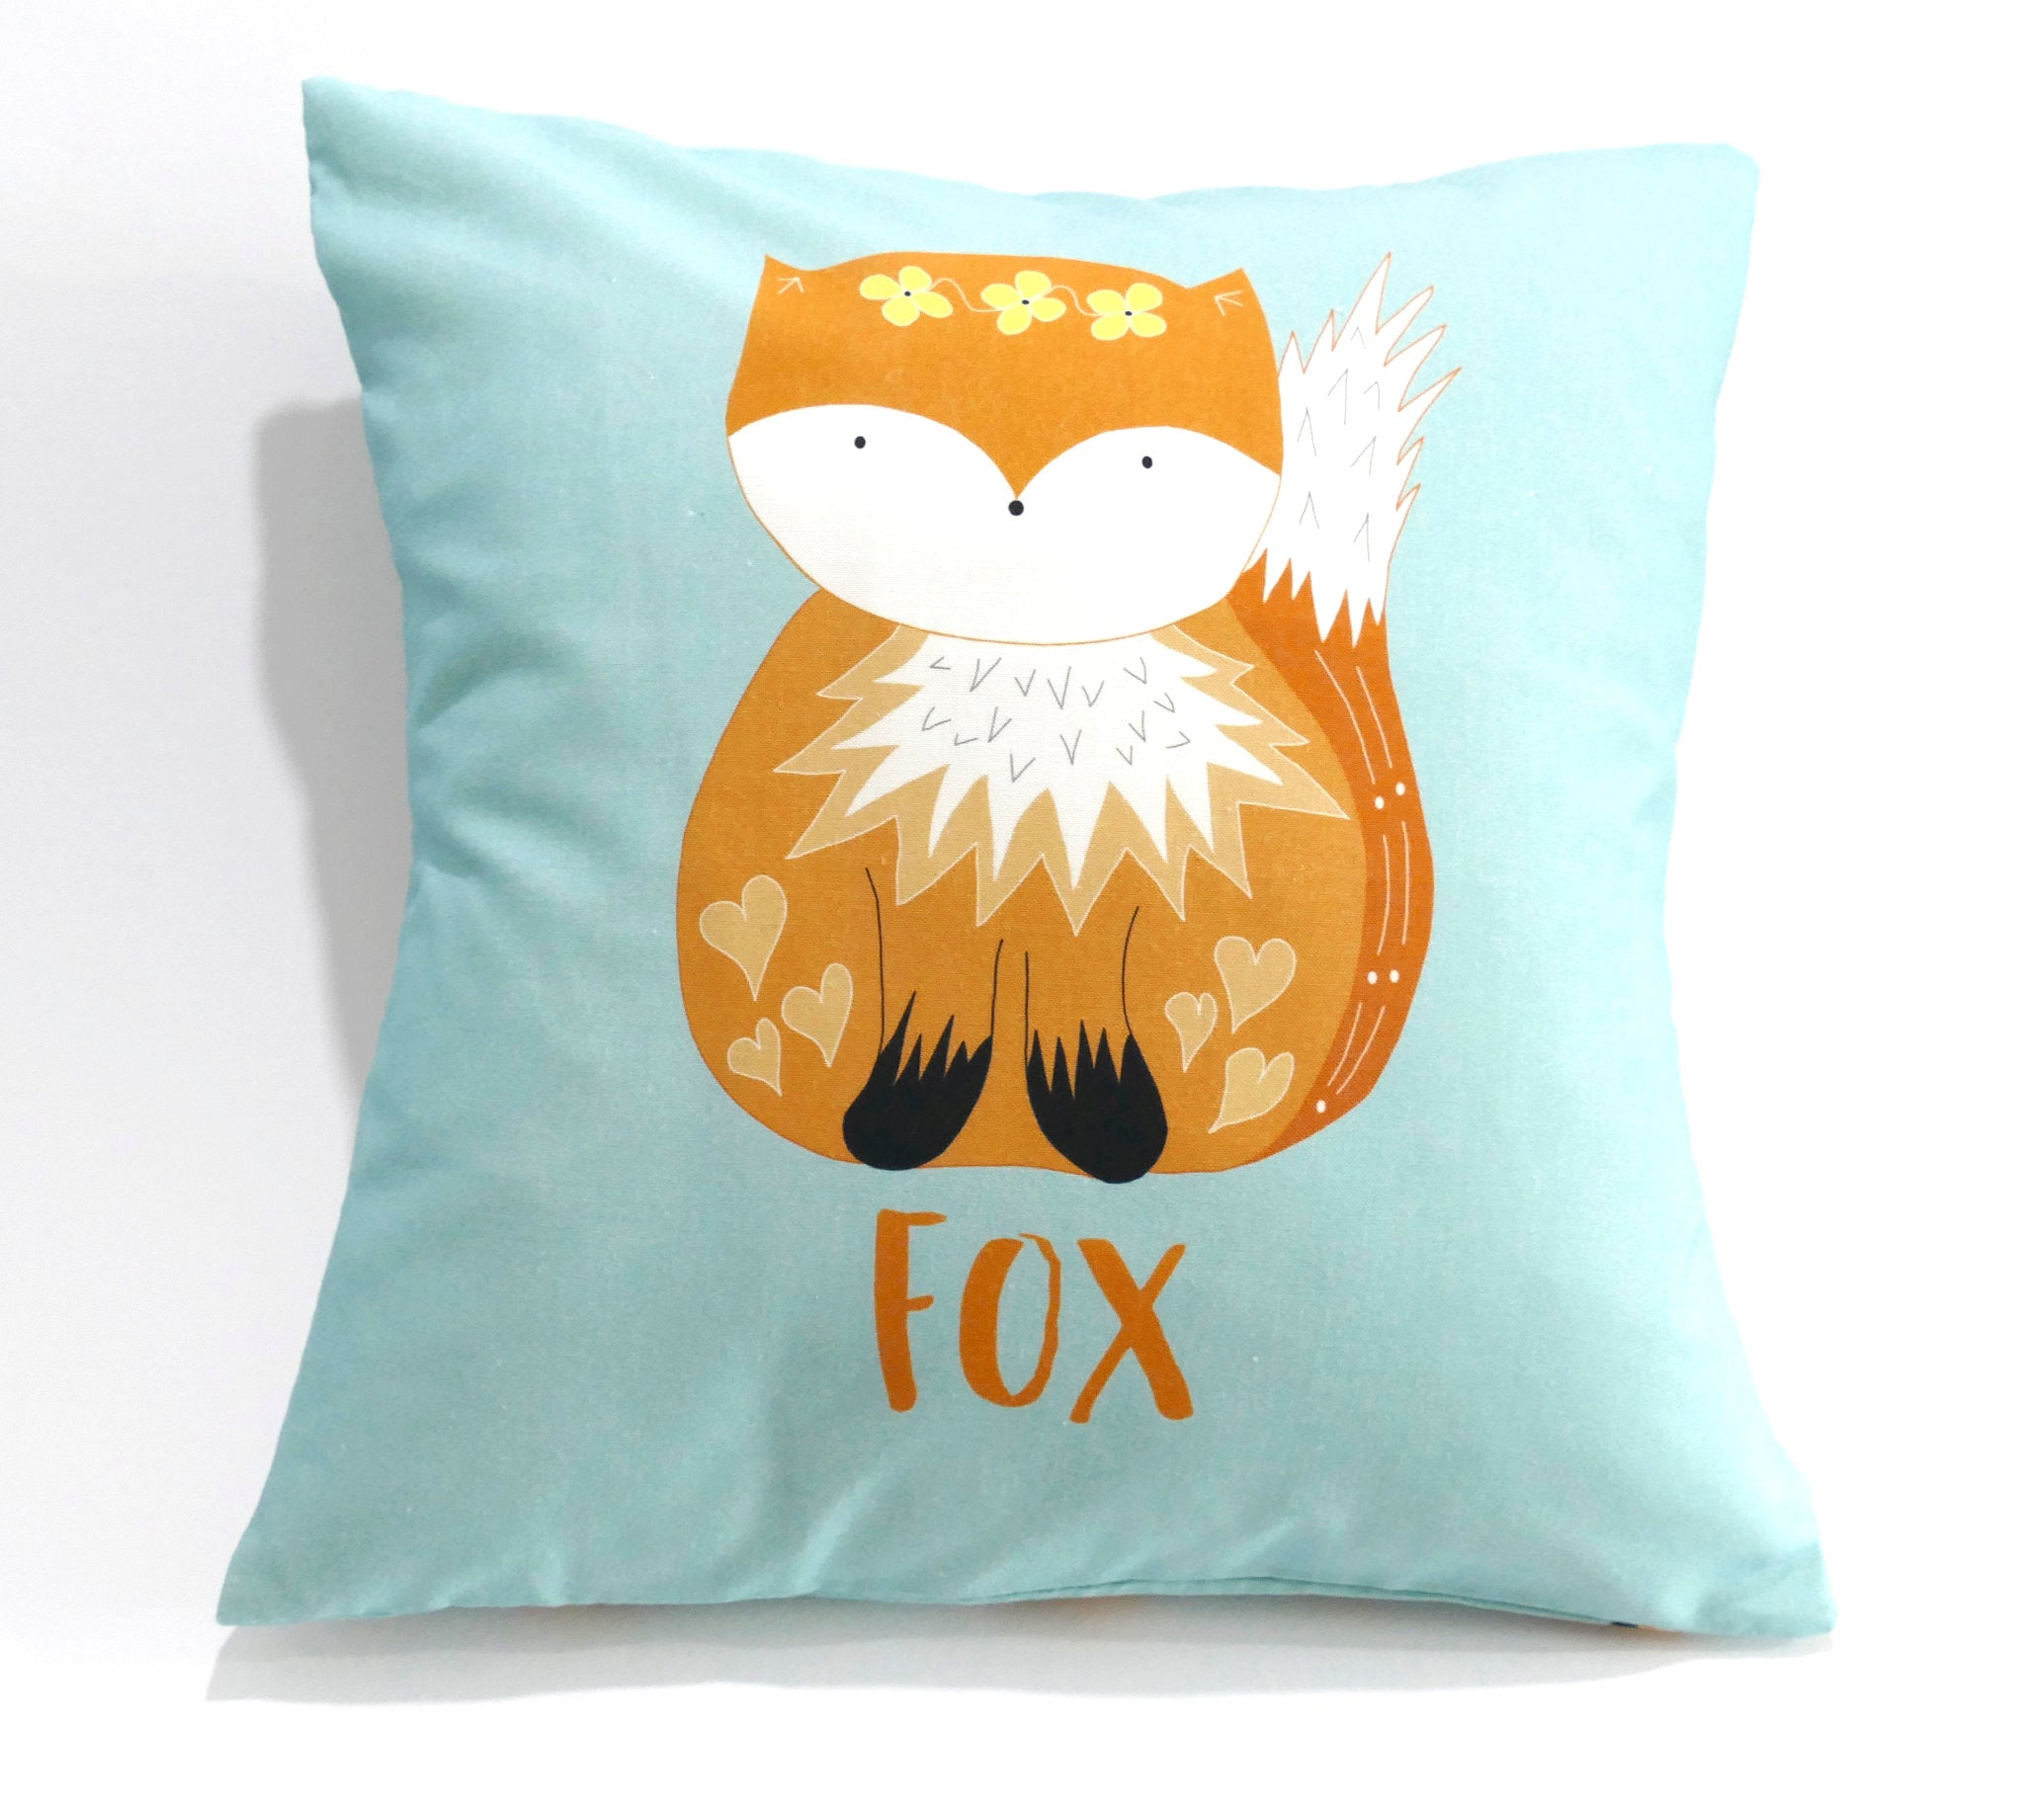 Fox cushion cover sewing kit